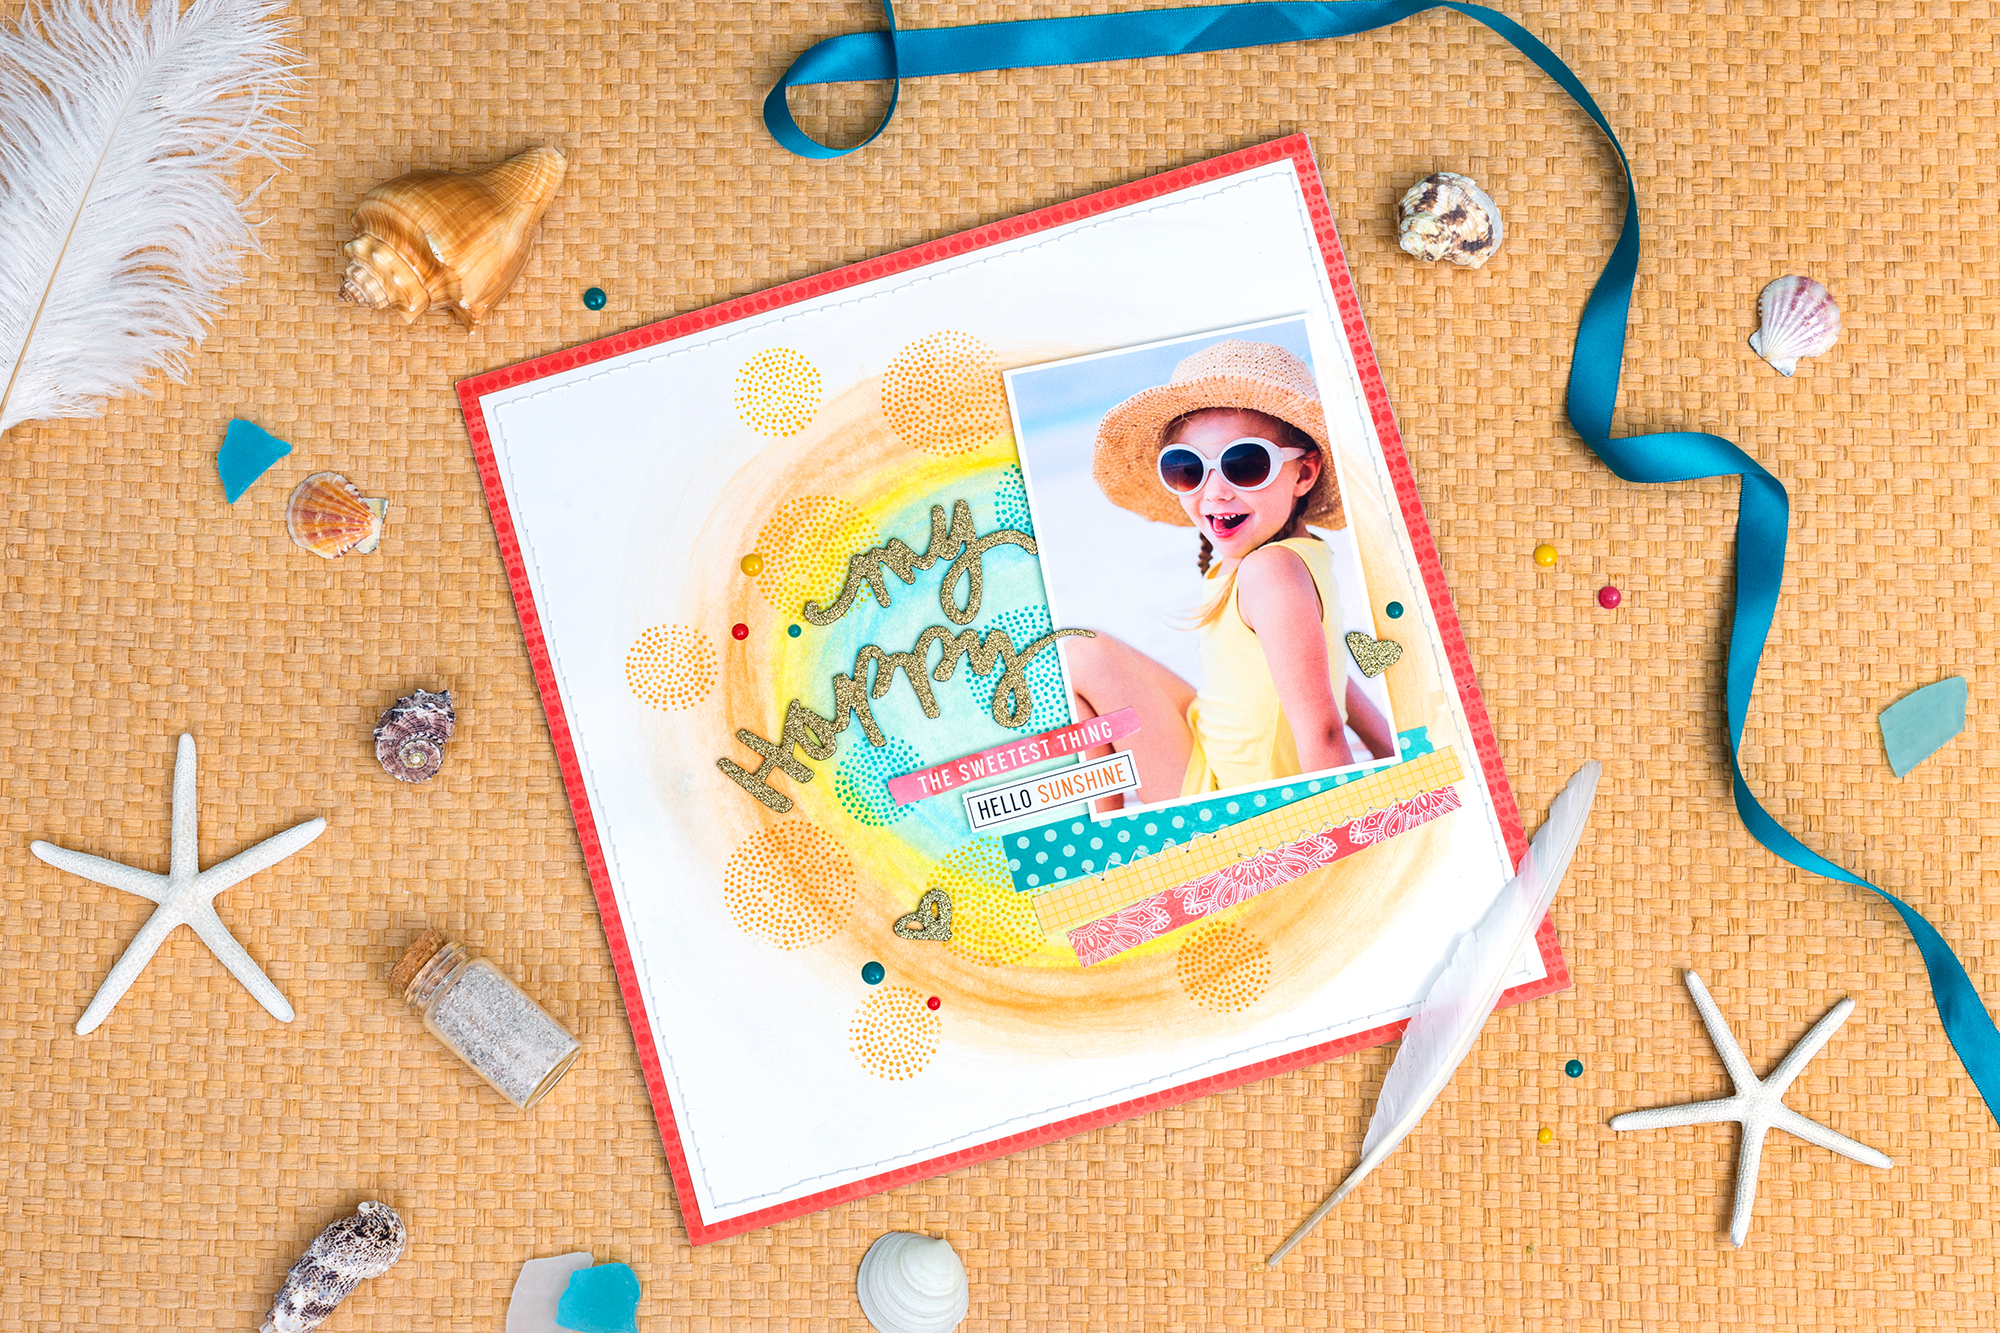 Scrapbook layout featuring the Precision Press Advanced stamping press and Vicki Boutin Art Crayons